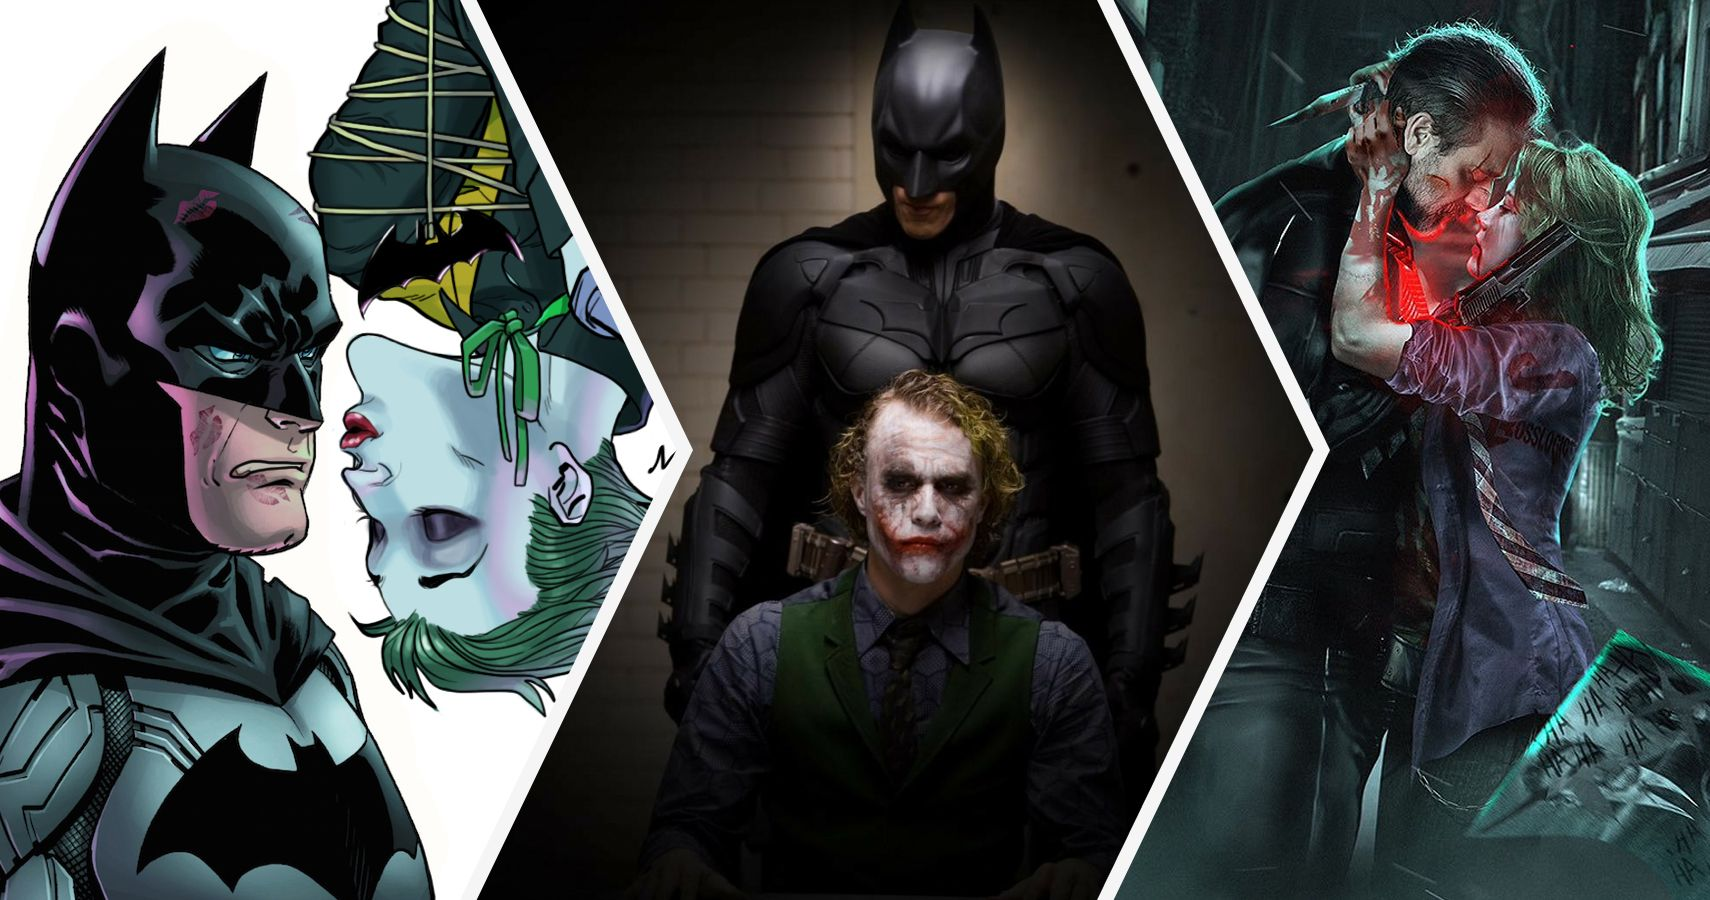 15 Moments That Prove The Joker Secretly Loves Batman